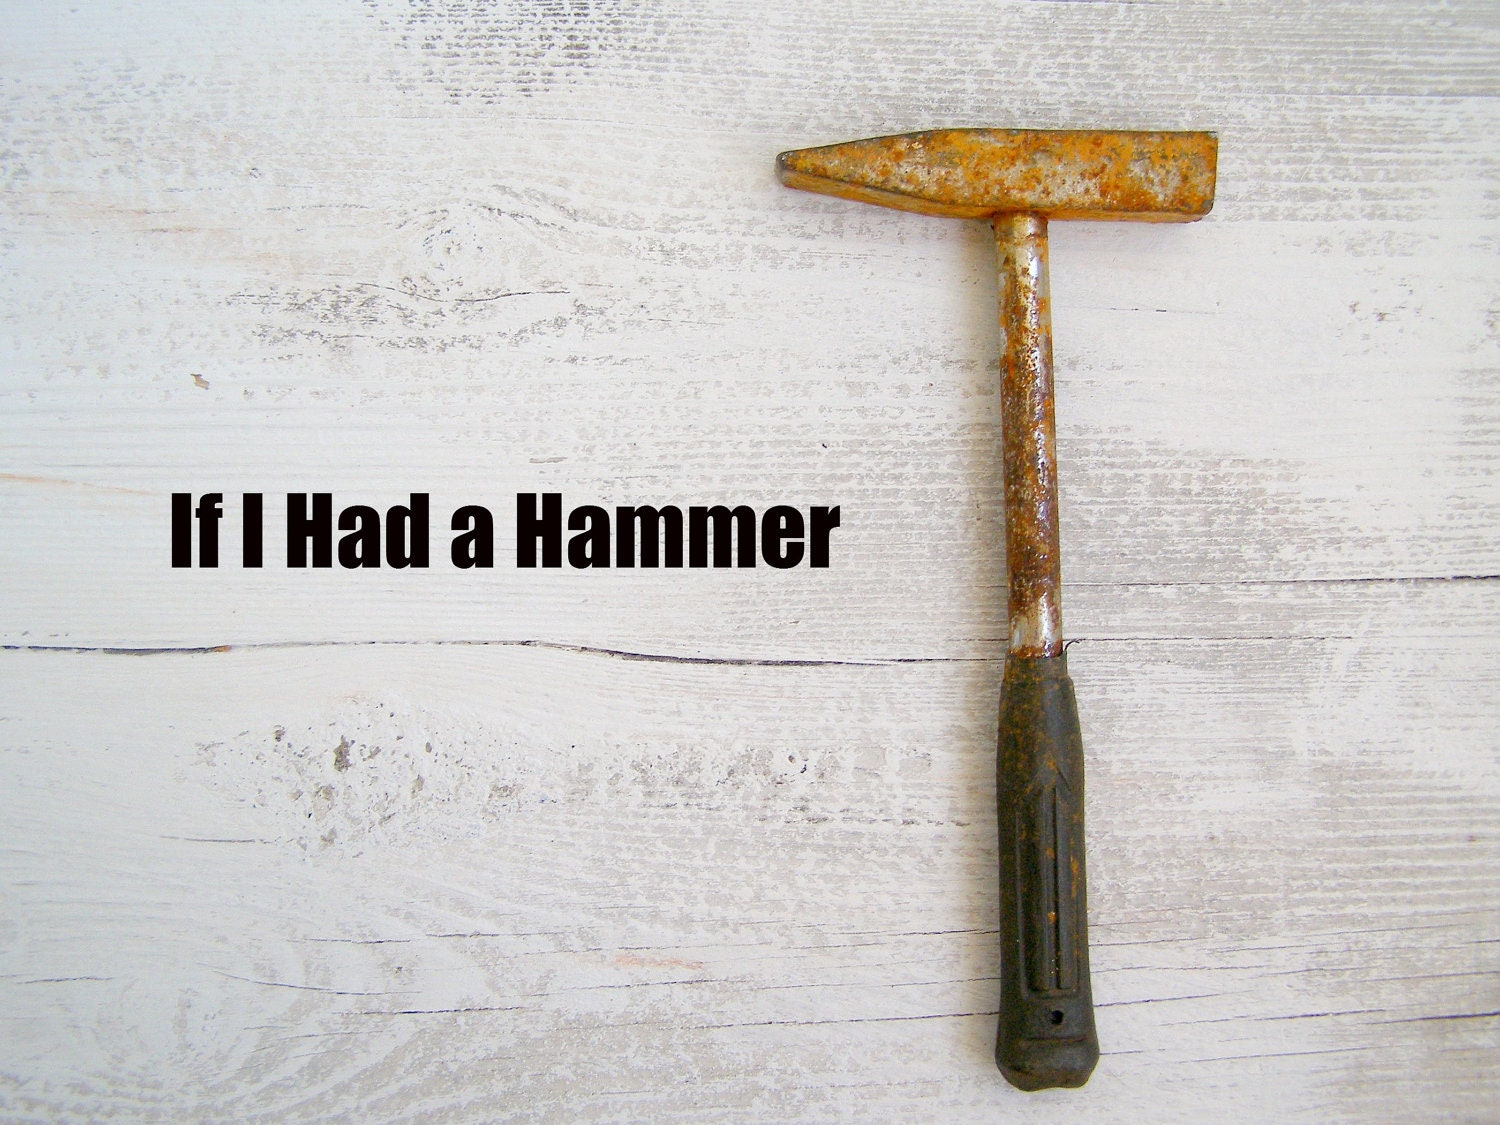 Vintage rusted hammer, industrial decor, vintage tool, compact hammer, gift for man, craft hammer, hardware - MeshuMaSH